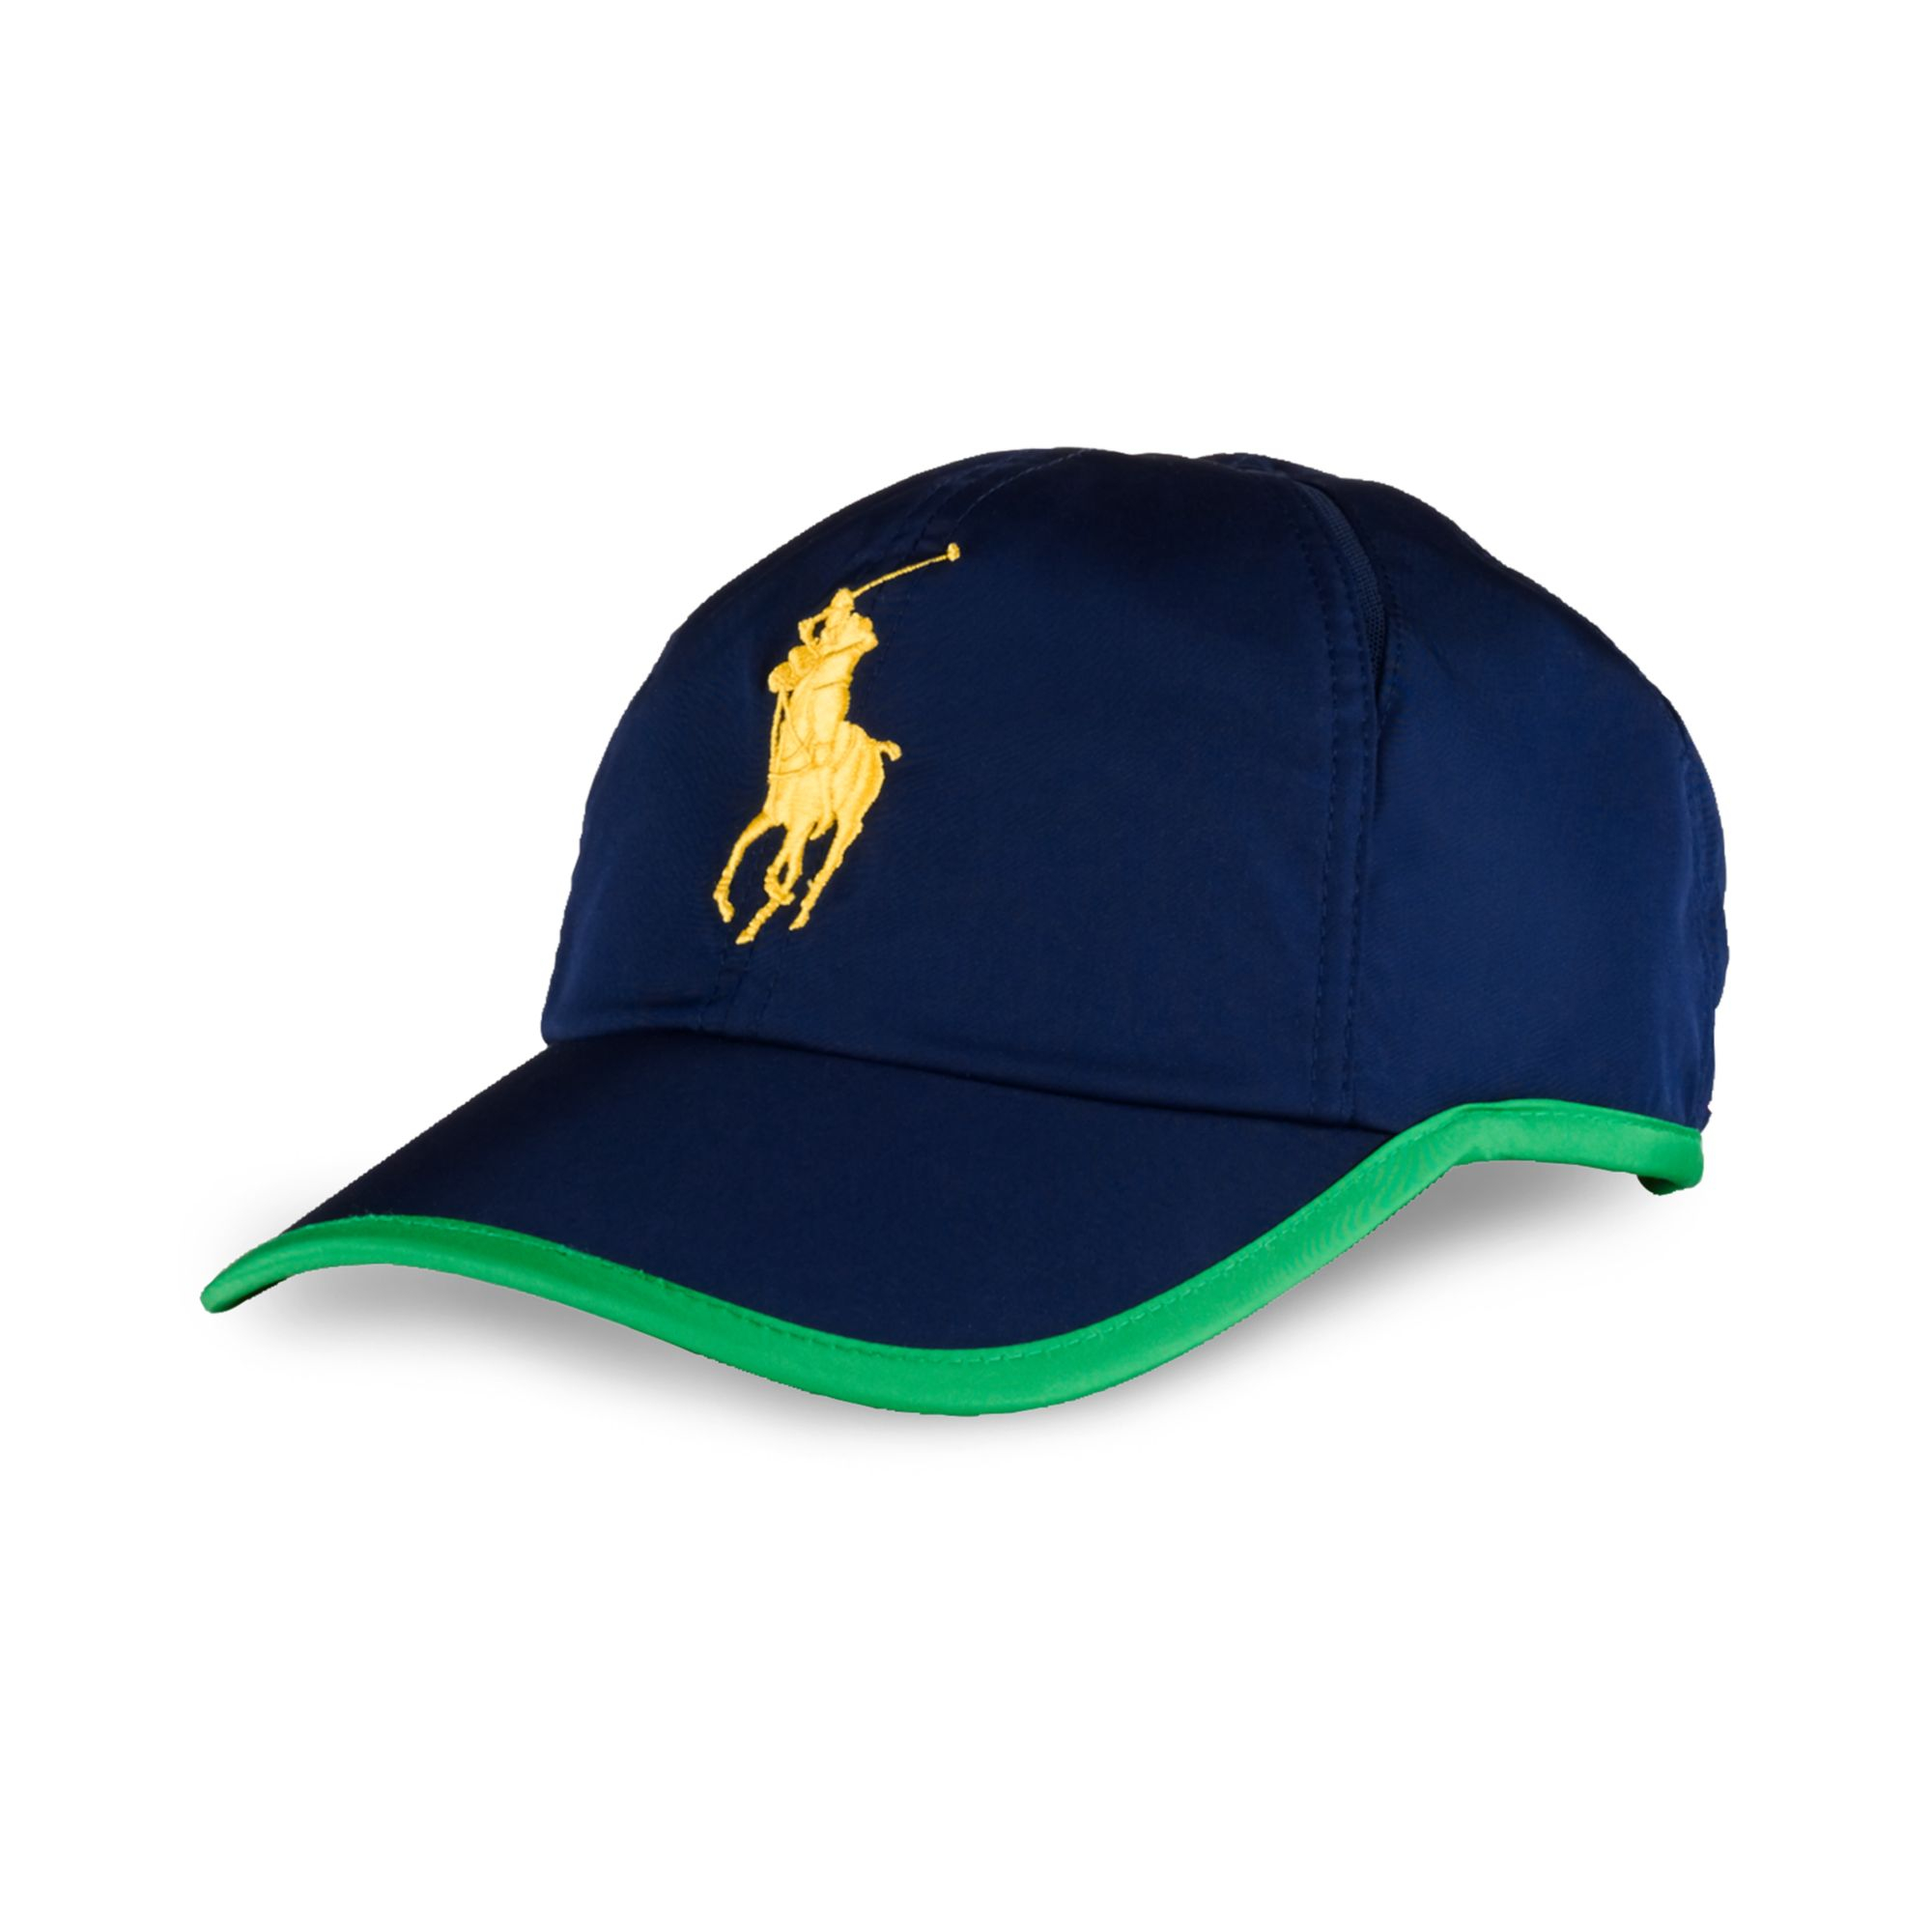 ad5f7670 Polo Ralph Lauren Polo Us Open Hat in Blue - Lyst